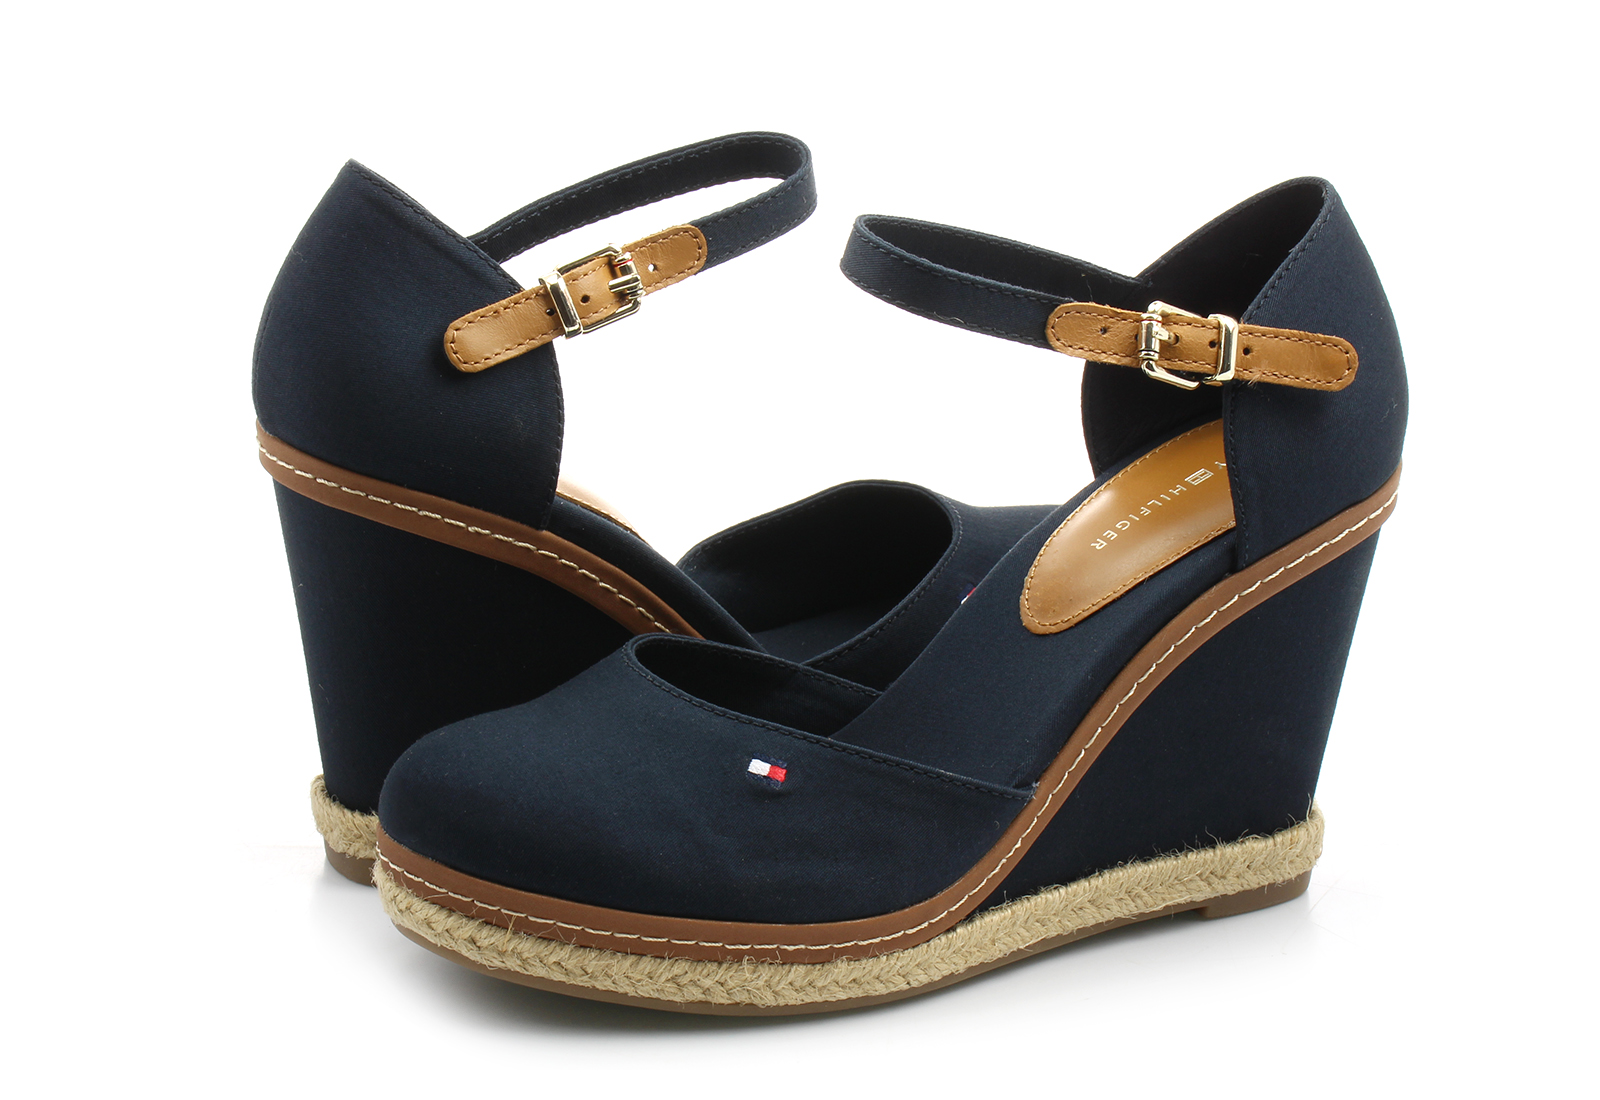 9c91d4814d Tommy Hilfiger Platforma Plave Sandale - Emma 13 - Office Shoes ...